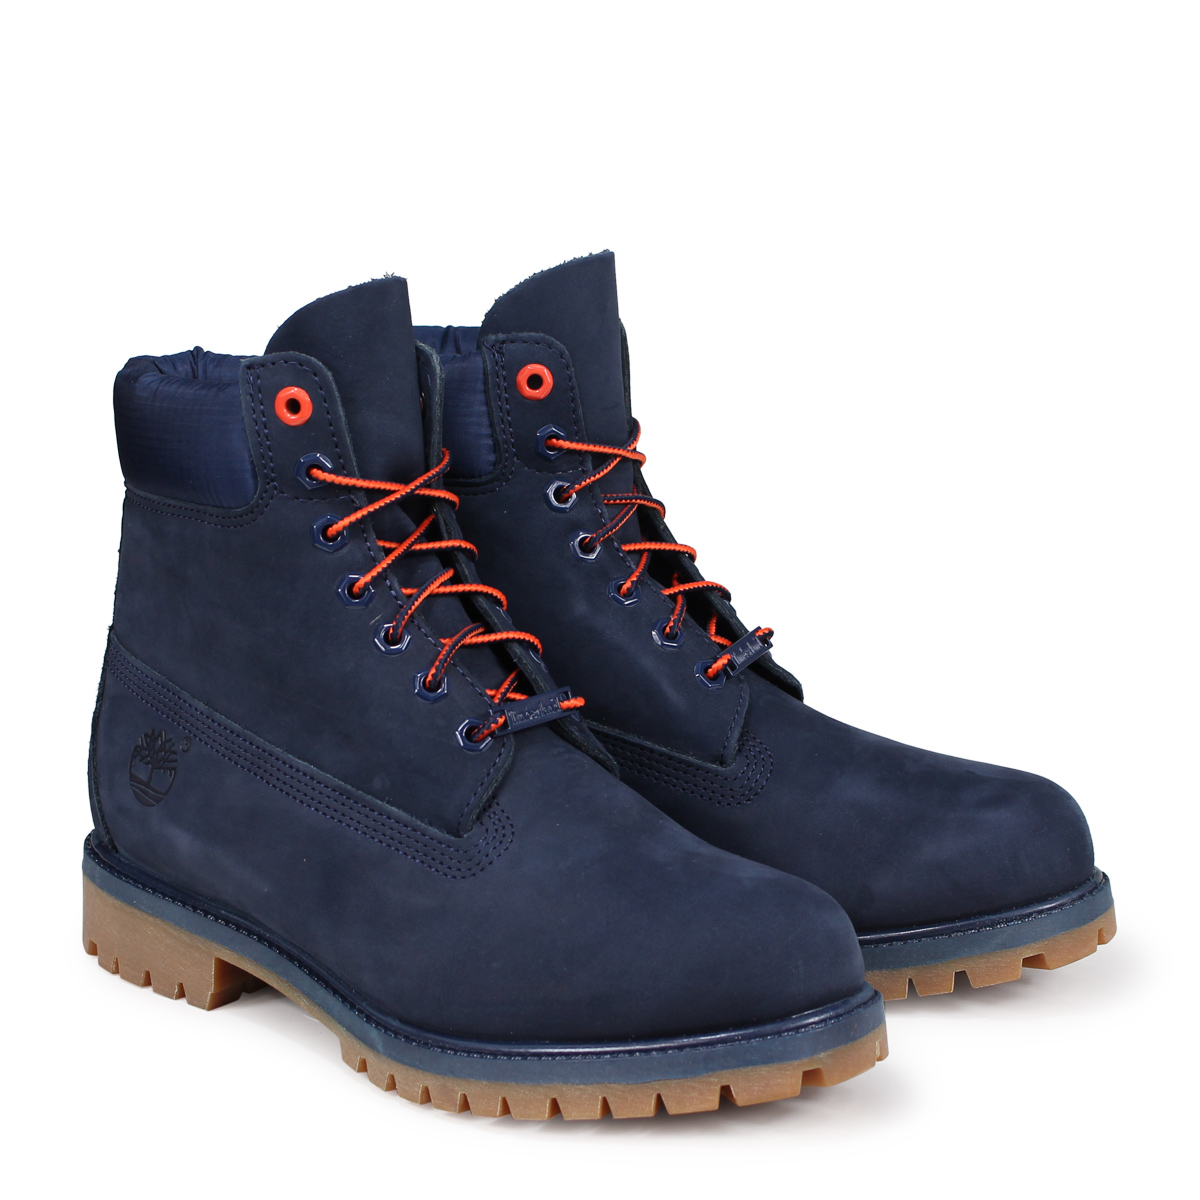 6 inches of Timberland 6 INCH PREMIUM BOOTS Timberland boots men A1U7X W Wise navies